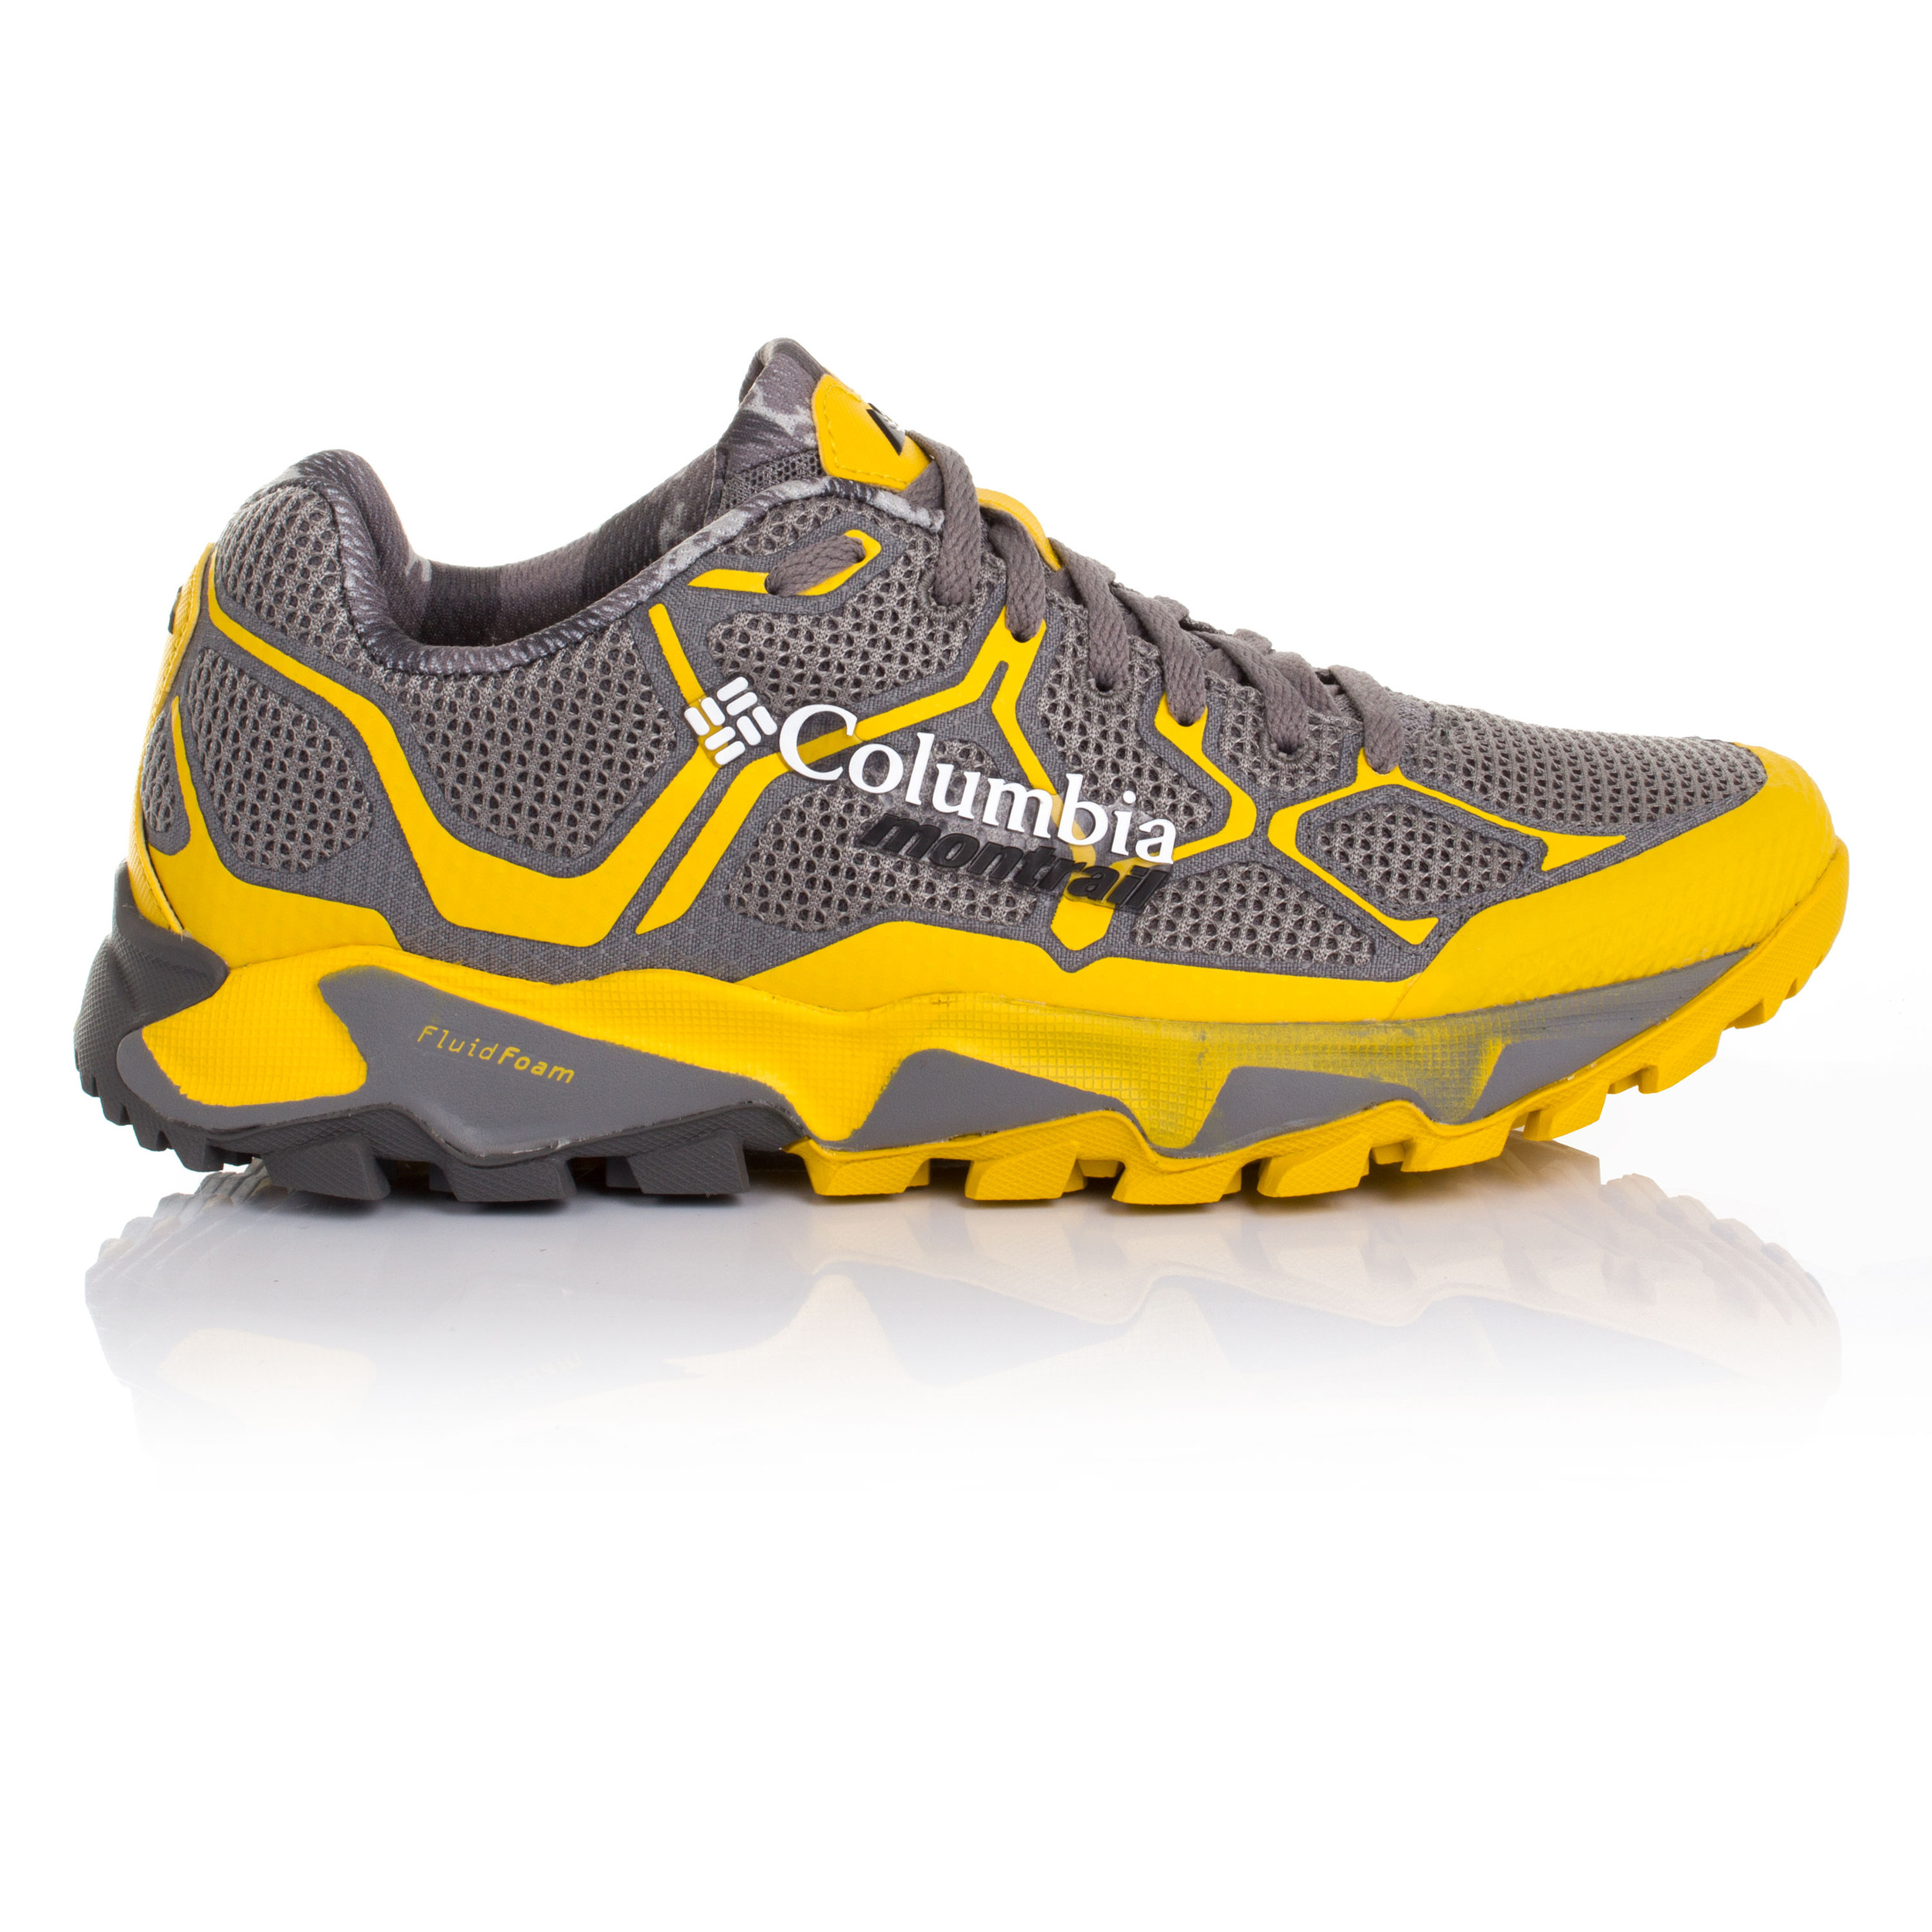 Gris Running Trans Alps Jaune Chaussures tHomme Trail Columbia F k QCstdxBhro